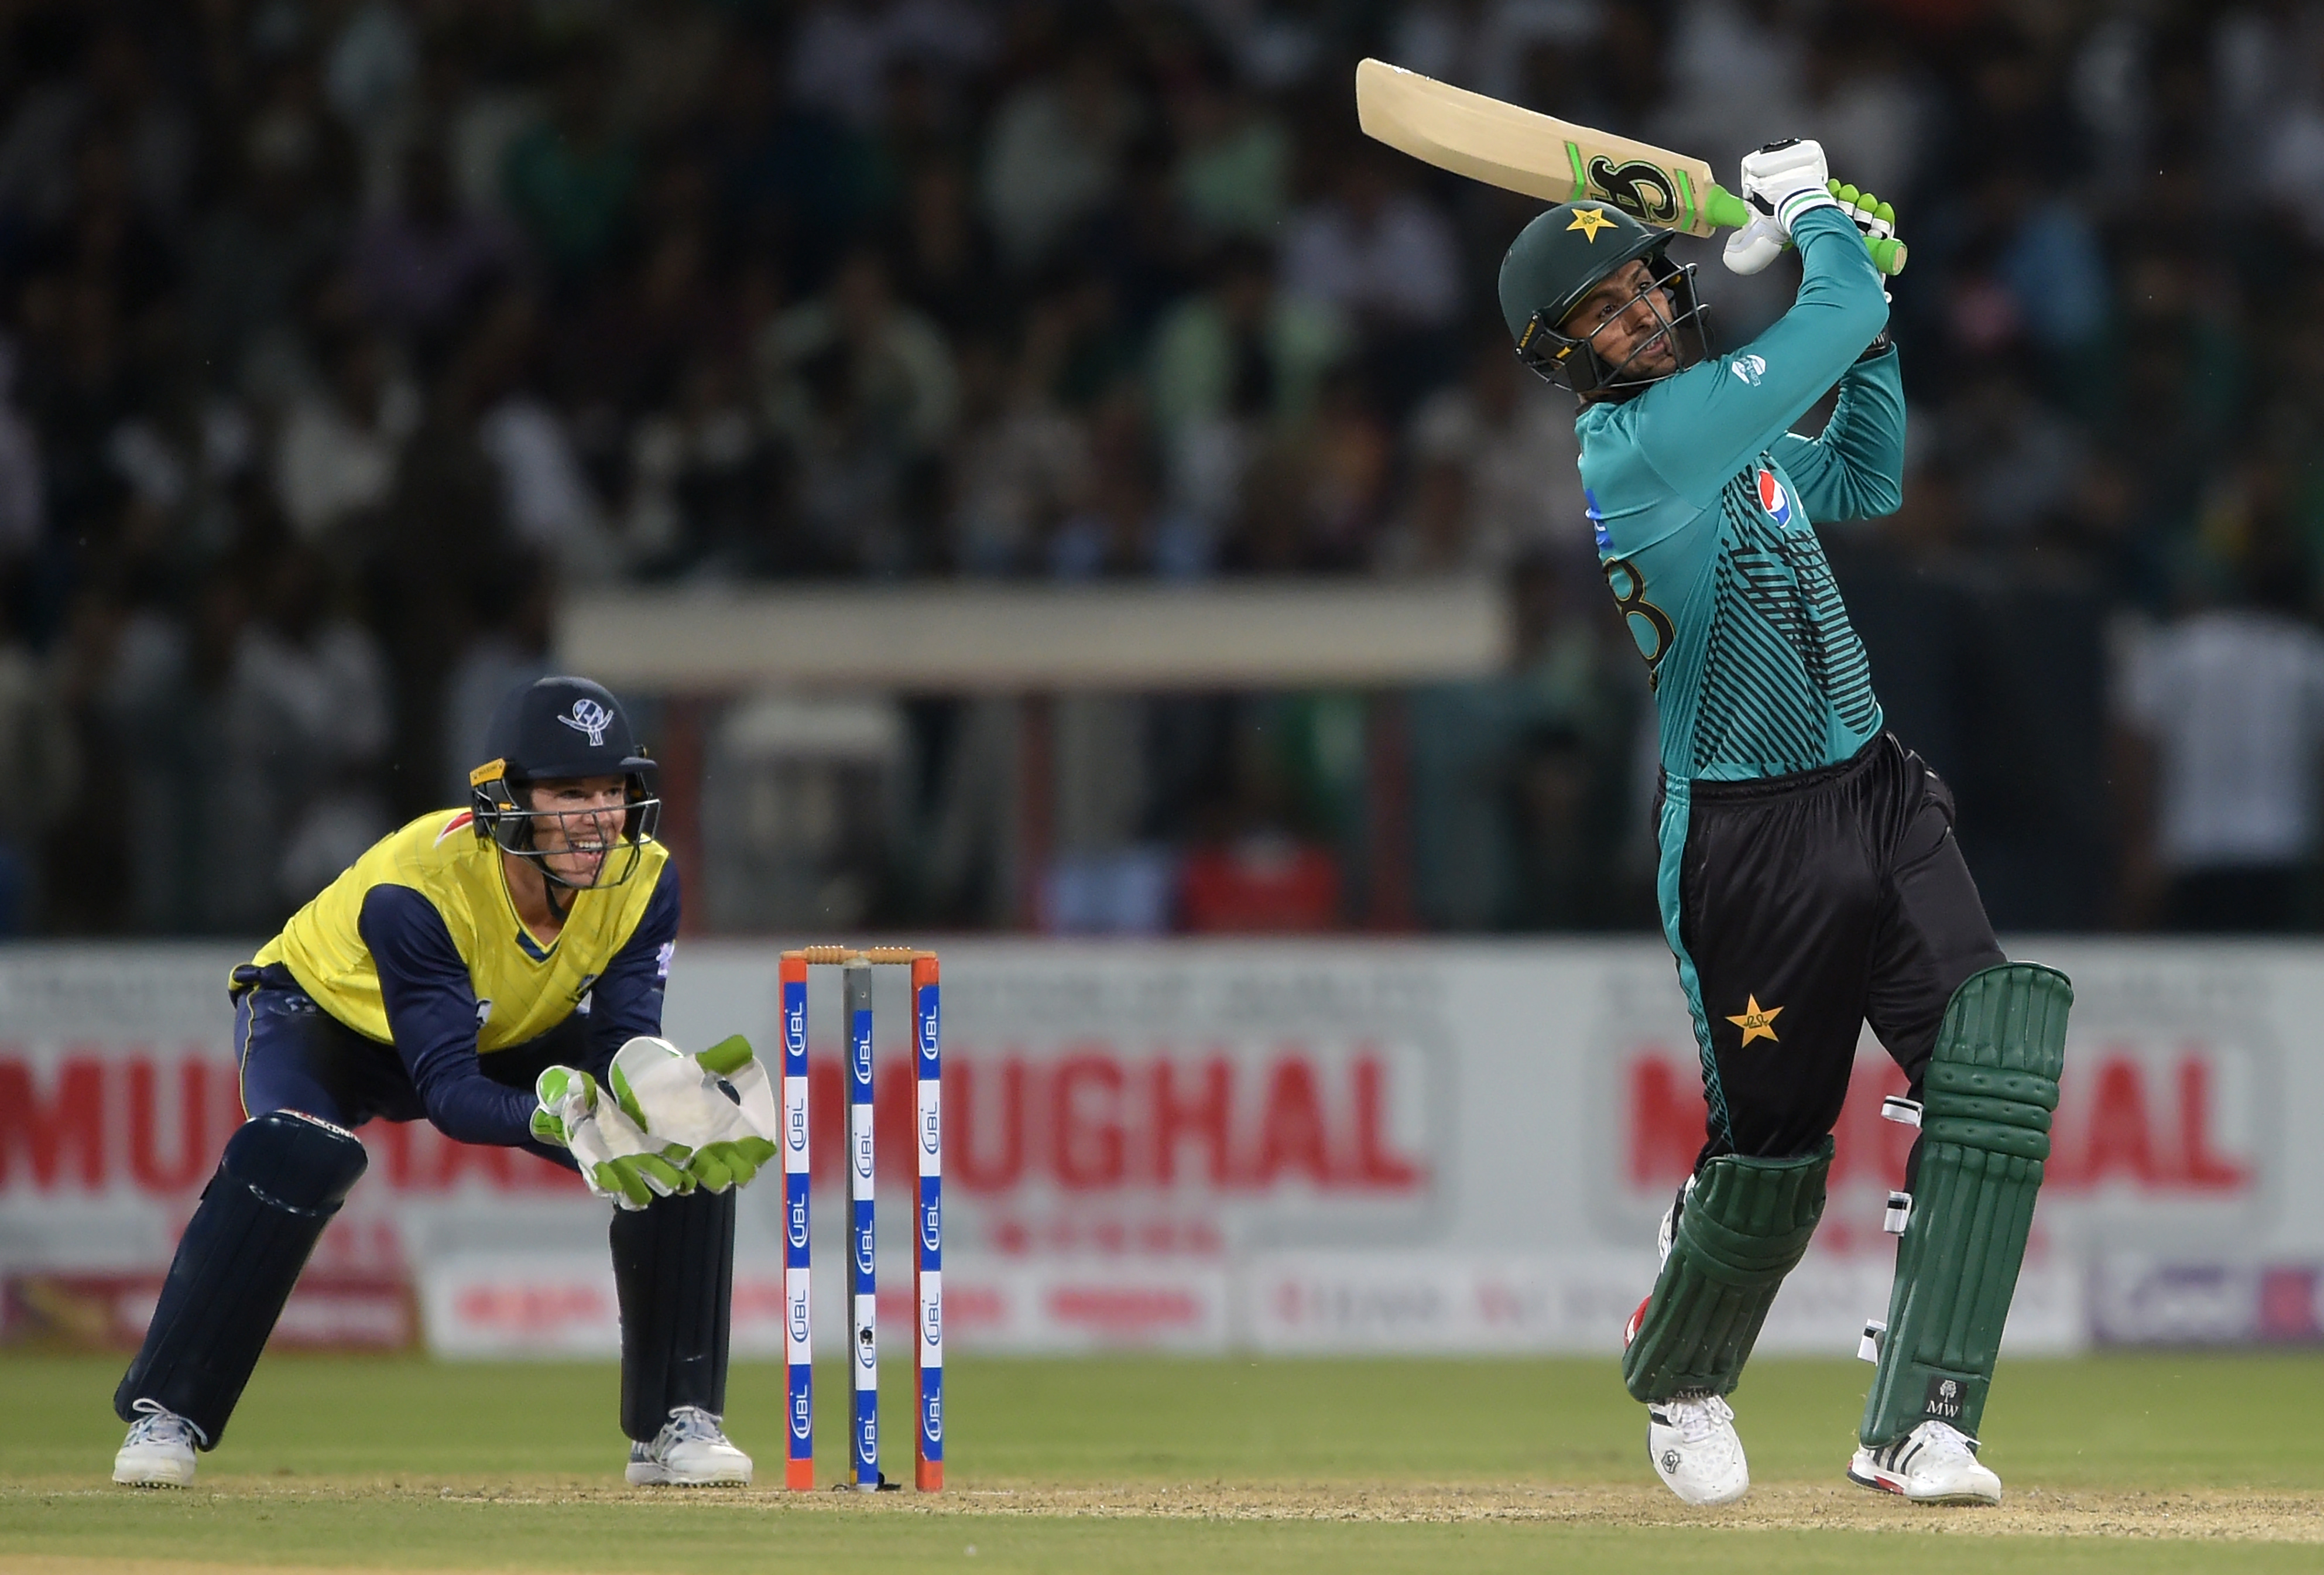 Pakistani batsman Shoaib Malik (R) hits a six as World XI wicketkeeper Tim Paine looks on during the second Twenty20 International match between the World XI and Pakistan at the Gaddafi Cricket Stadium in Lahore on September 13, 2017. / AFP PHOTO / AAMIR QURESHI